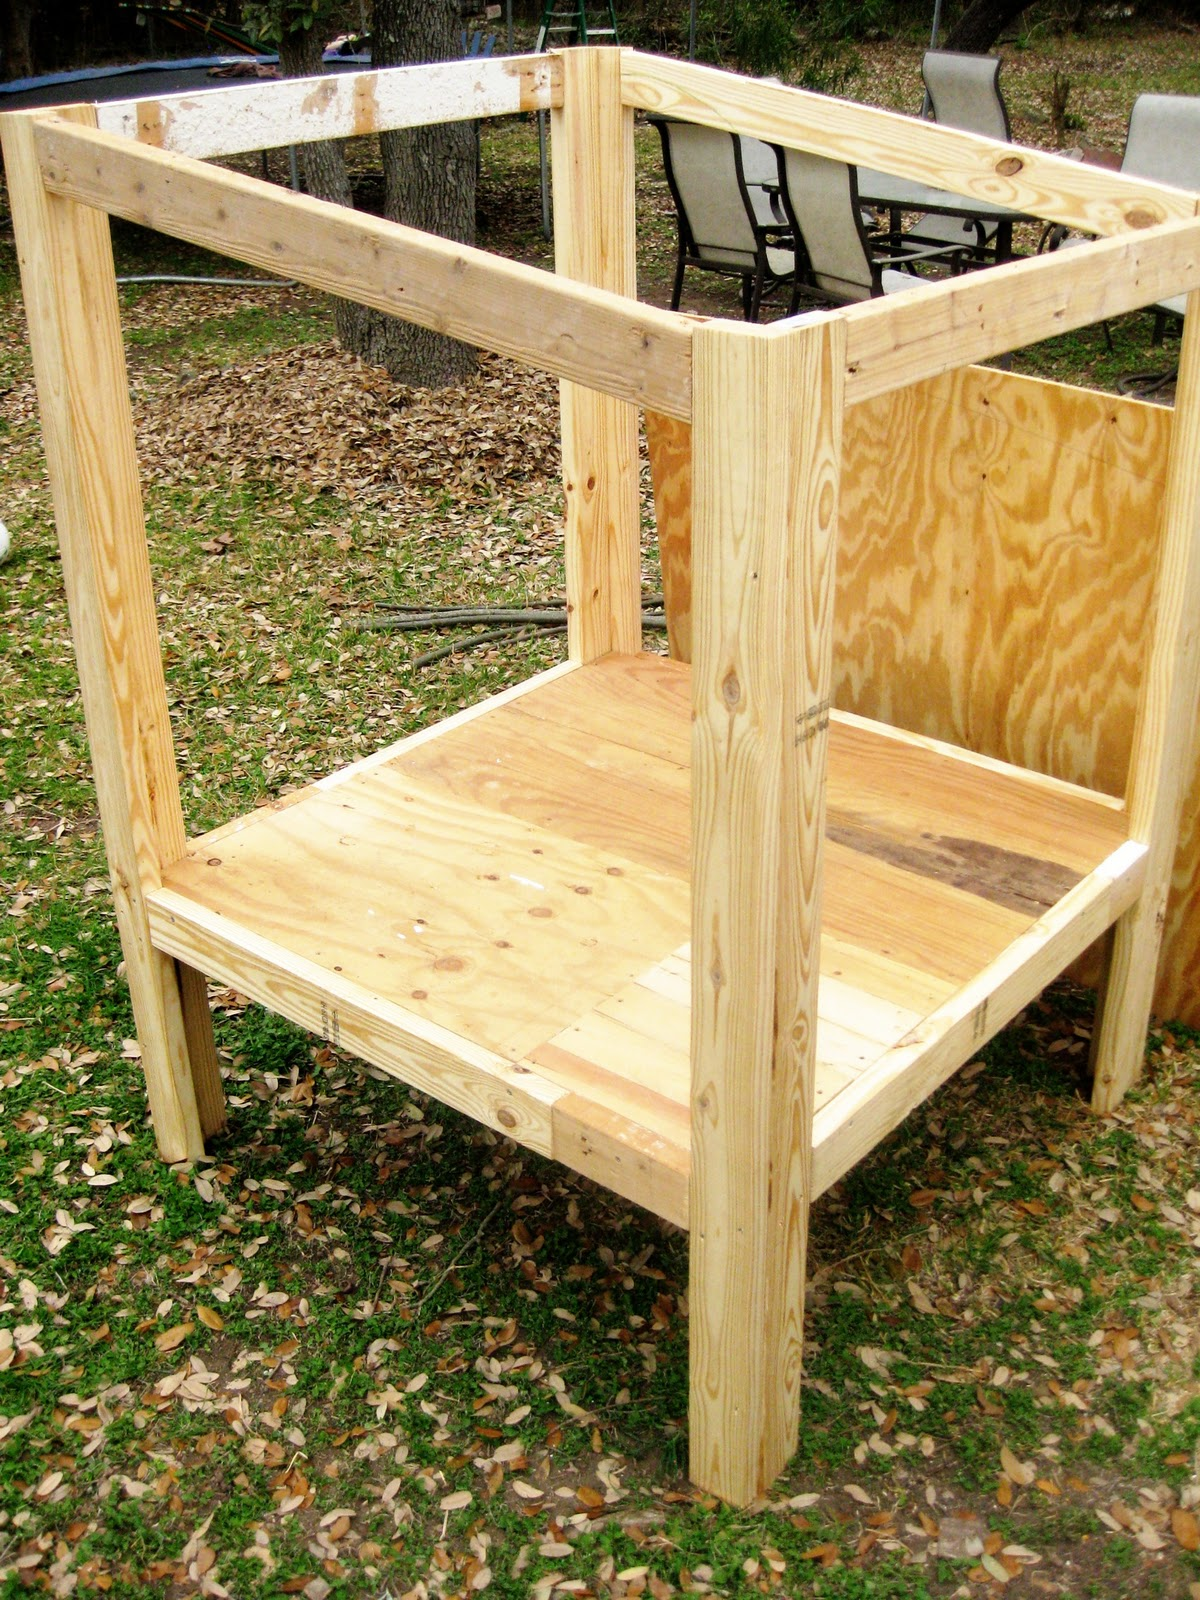 Building A Chicken Coop For Dummies Gypsy Meadows The One Where He Builds And She Paints A